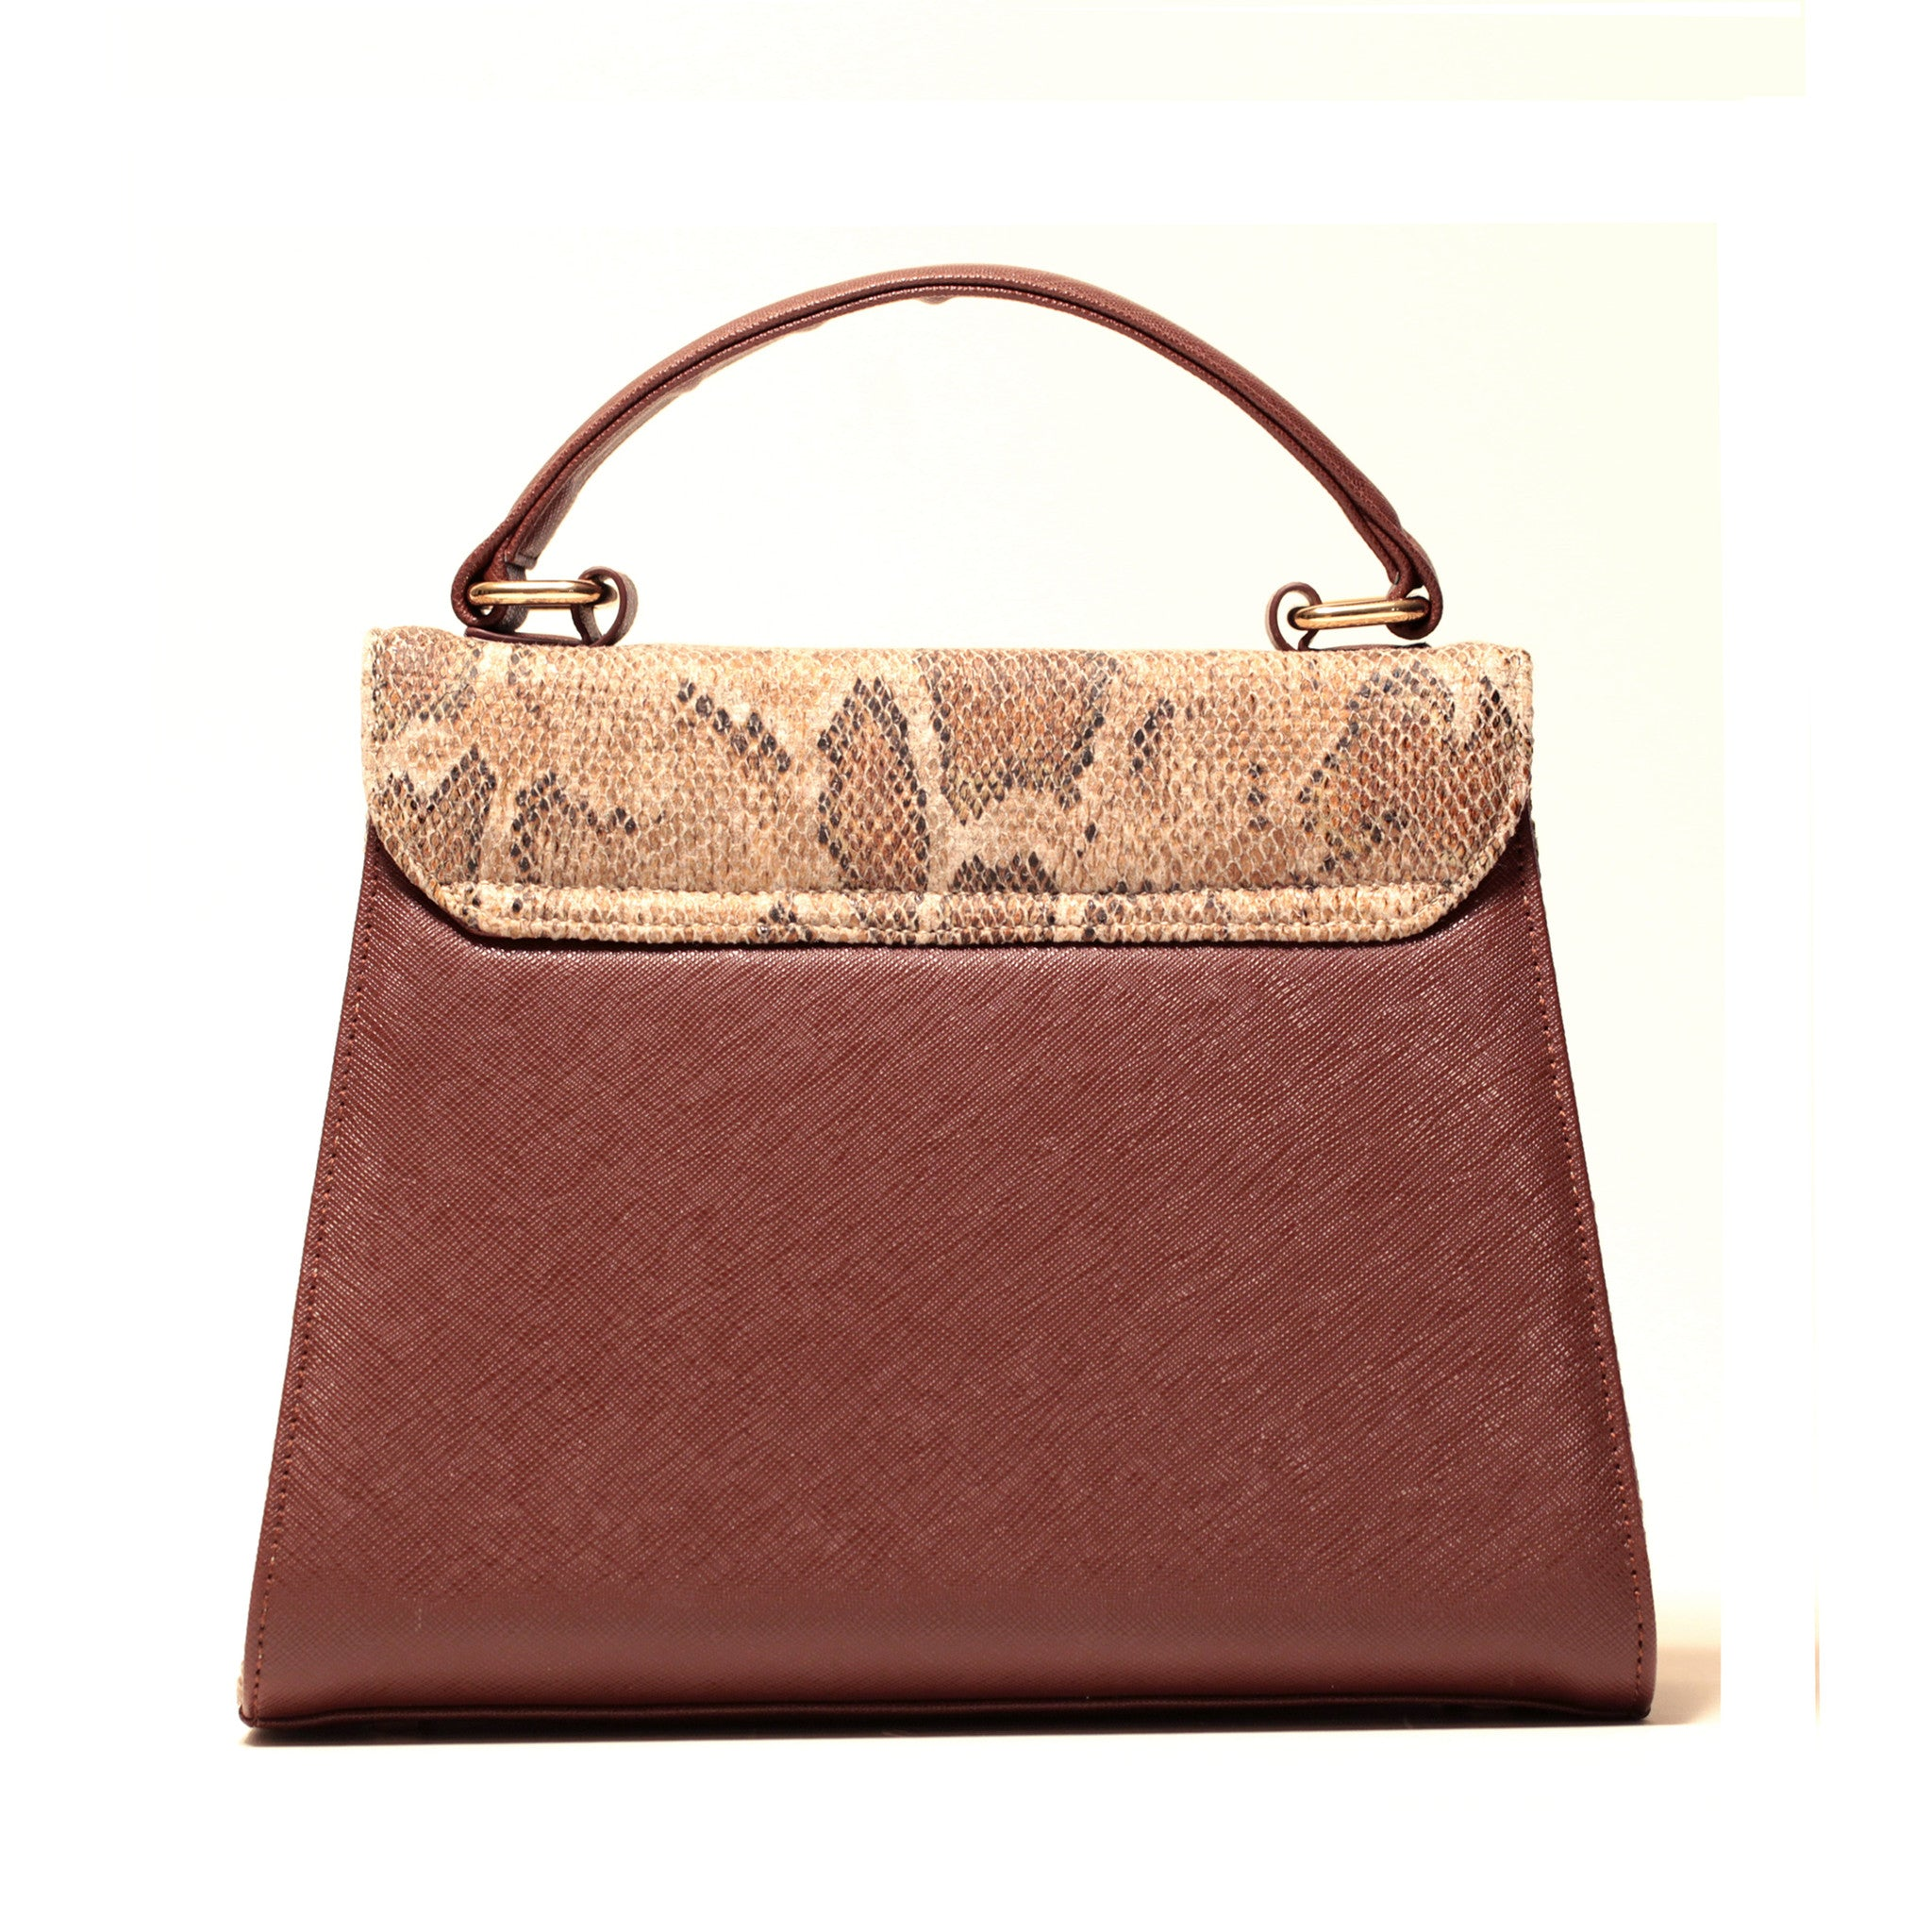 BROWN SNAKE PRINCESS SATCHEL